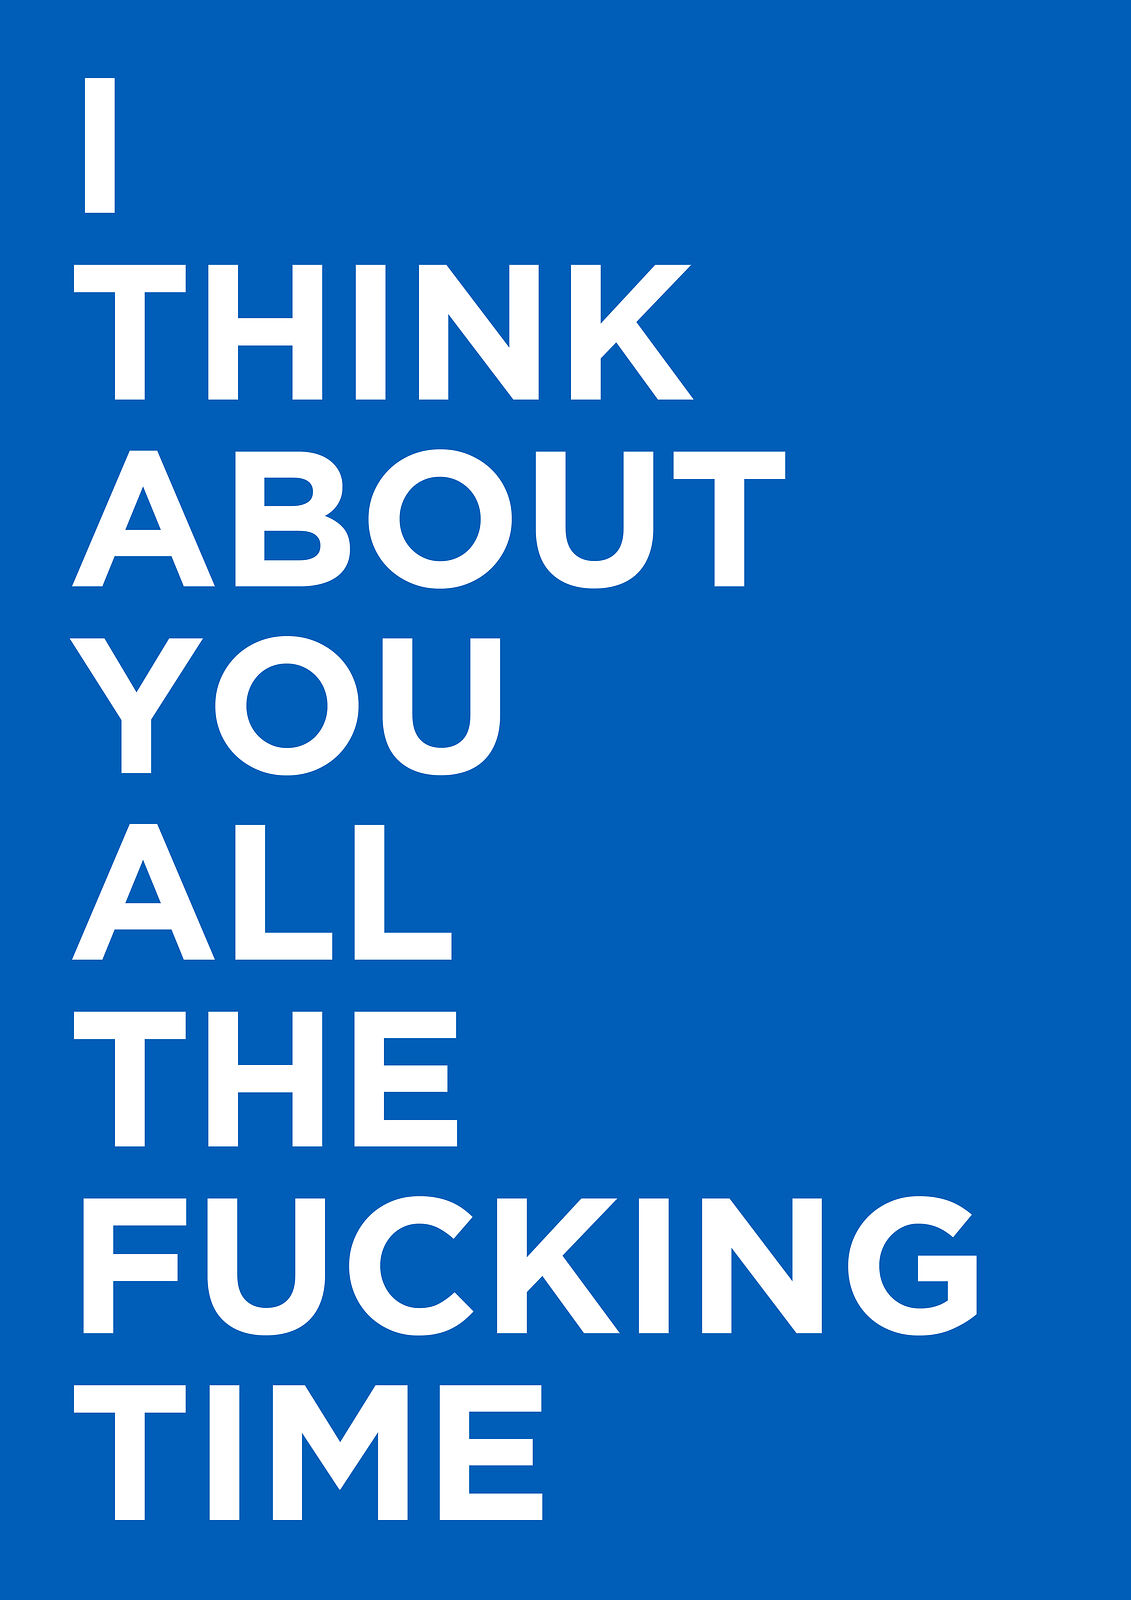 I Think About You All The Fucking Time - Charity Edition Screenprint